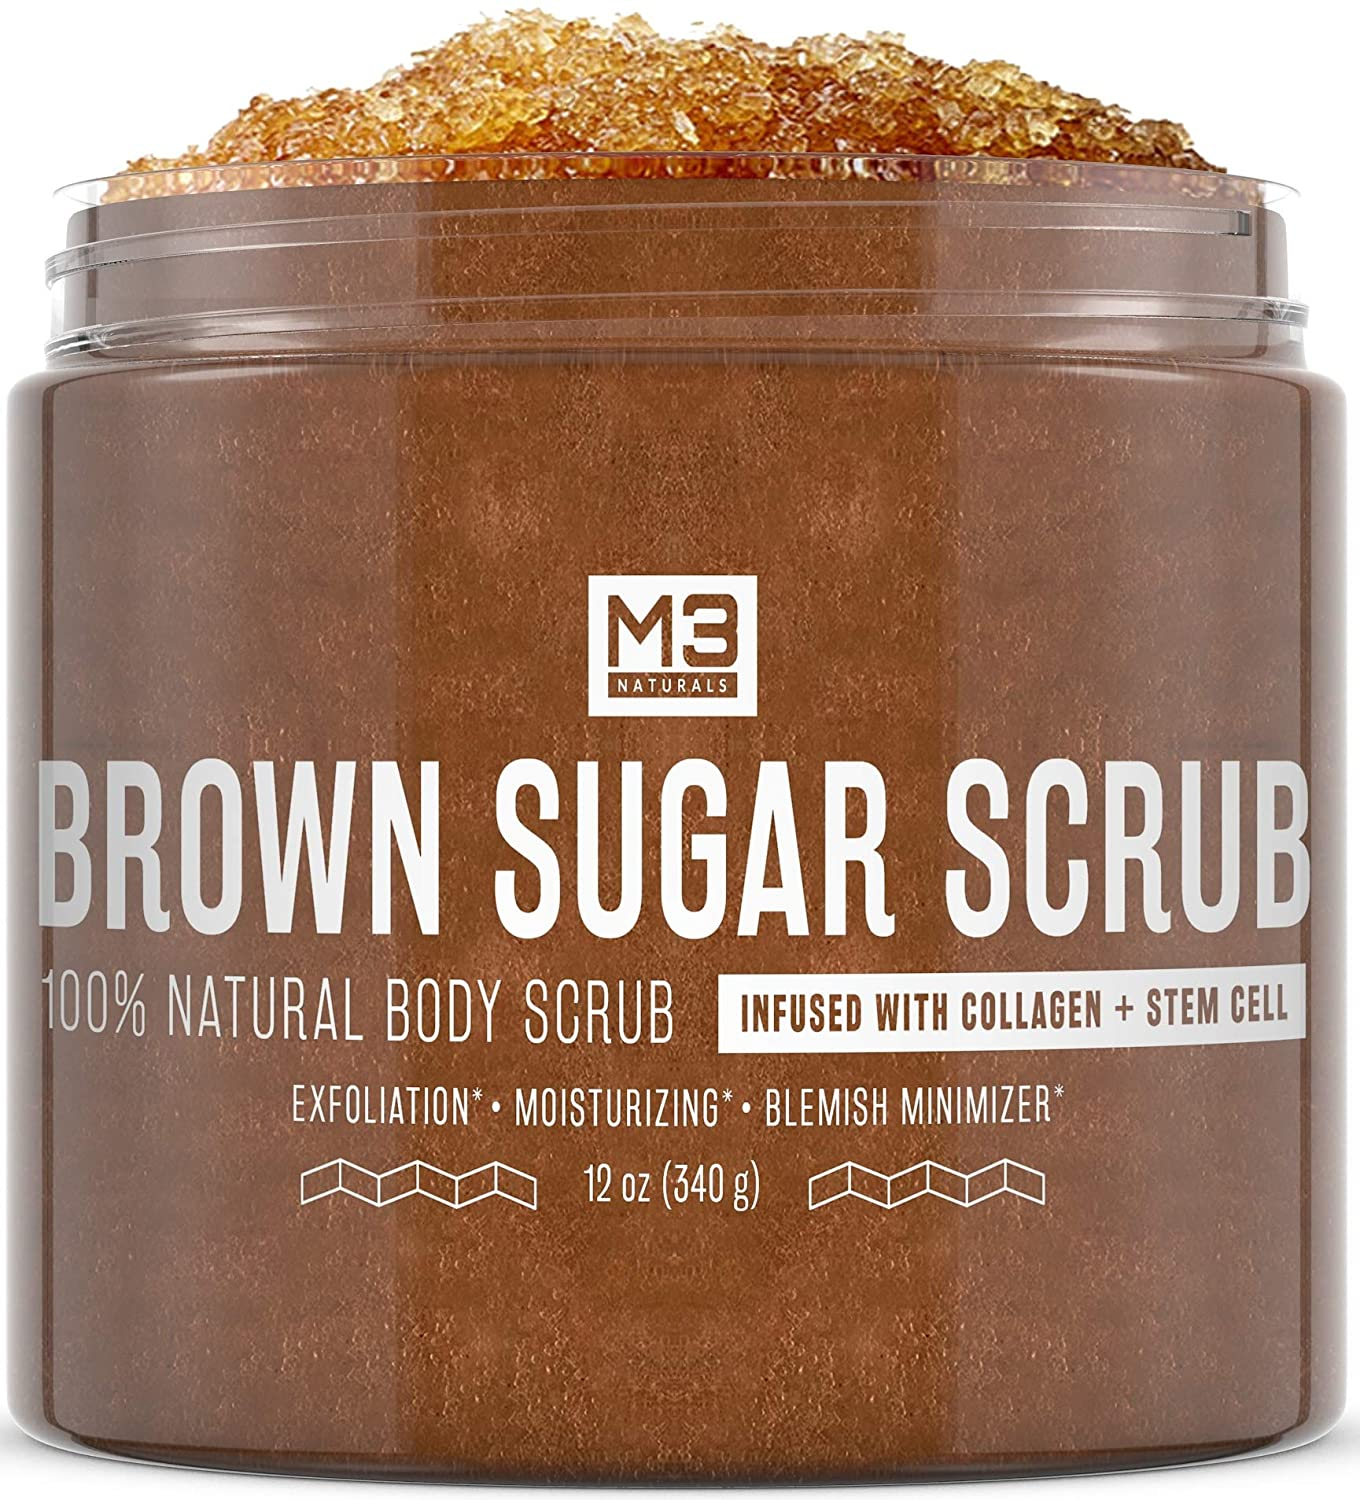 M3 Naturals Brown Sugar Scrub infused with Collagen and Stem Cell All Natural Body and Face Exfoliating Stretch Marks Spider Veins Acne Scars Anti Cellulite Exfoliator Wrinkles Skin Care